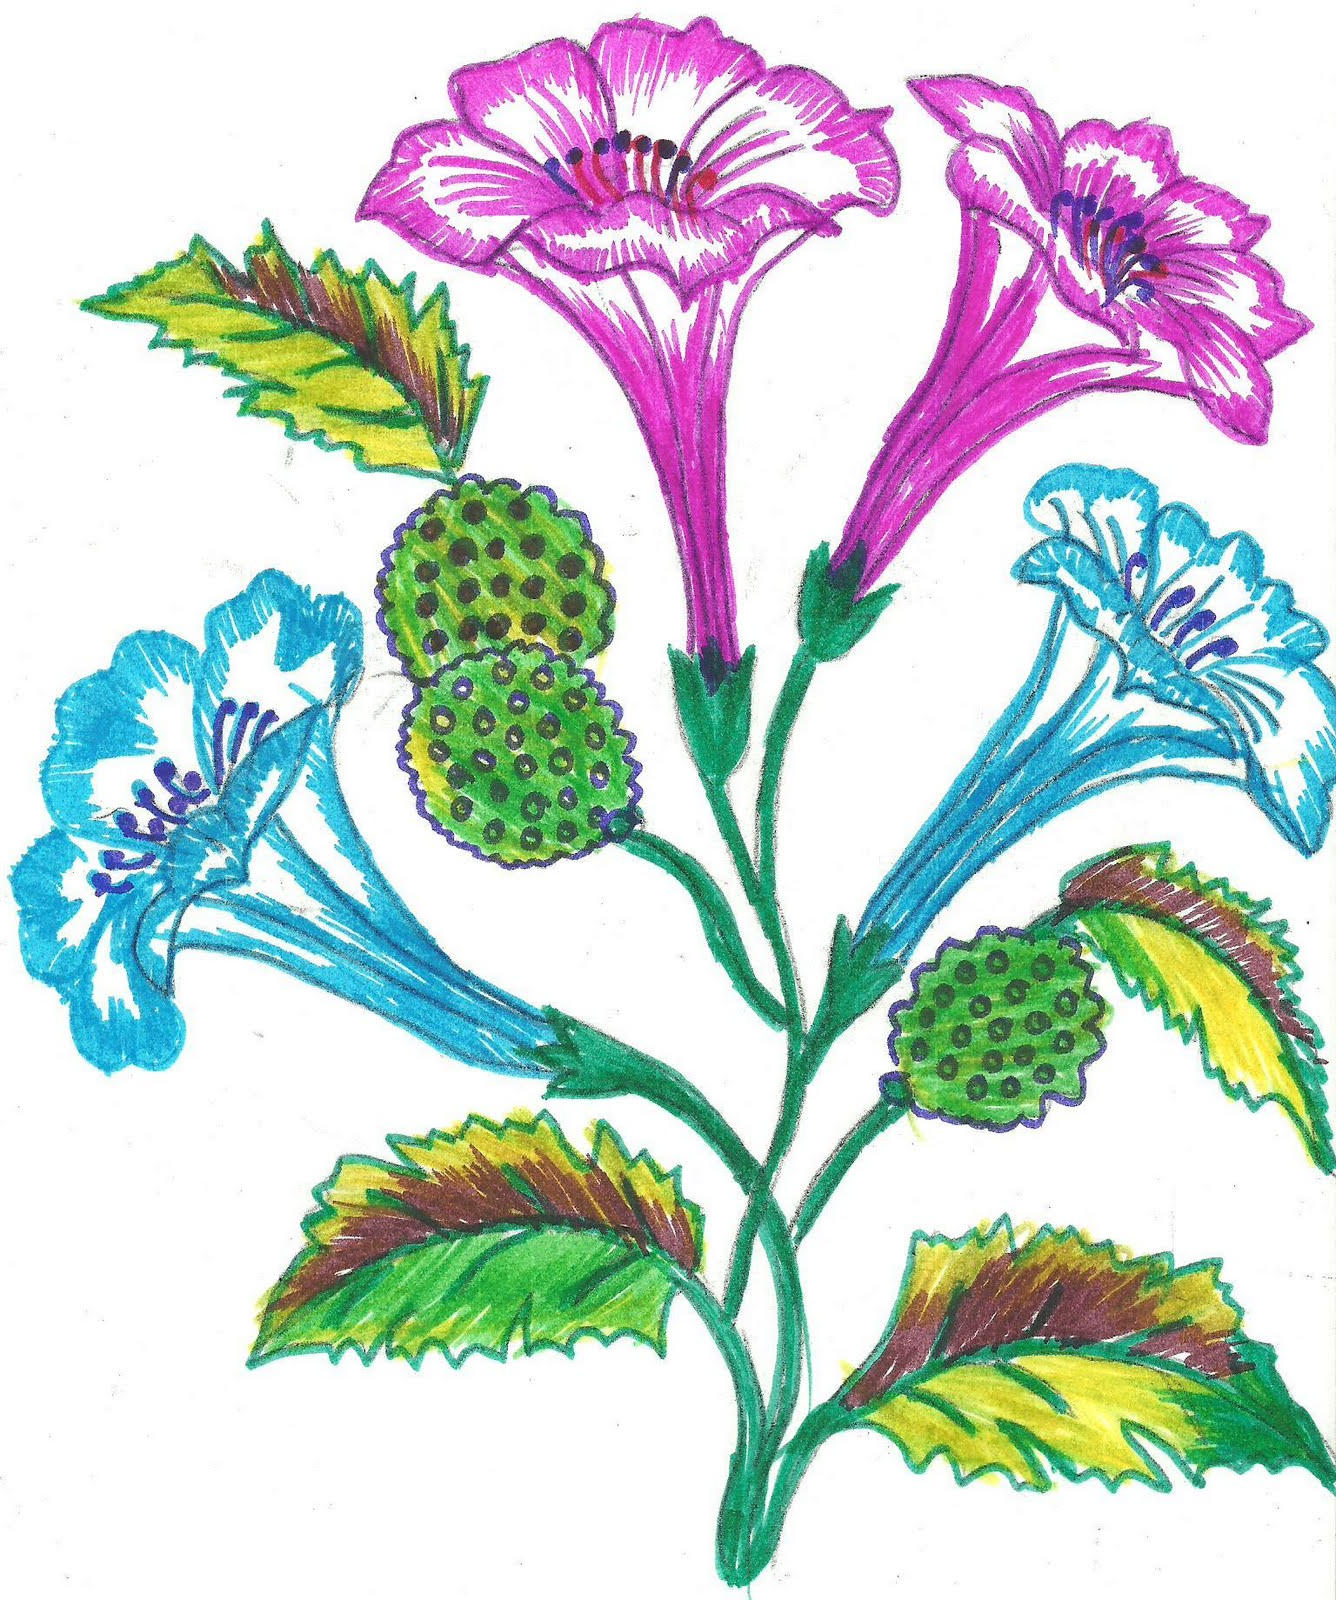 Colorful Flower Drawing at GetDrawings.com | Free for personal use ...